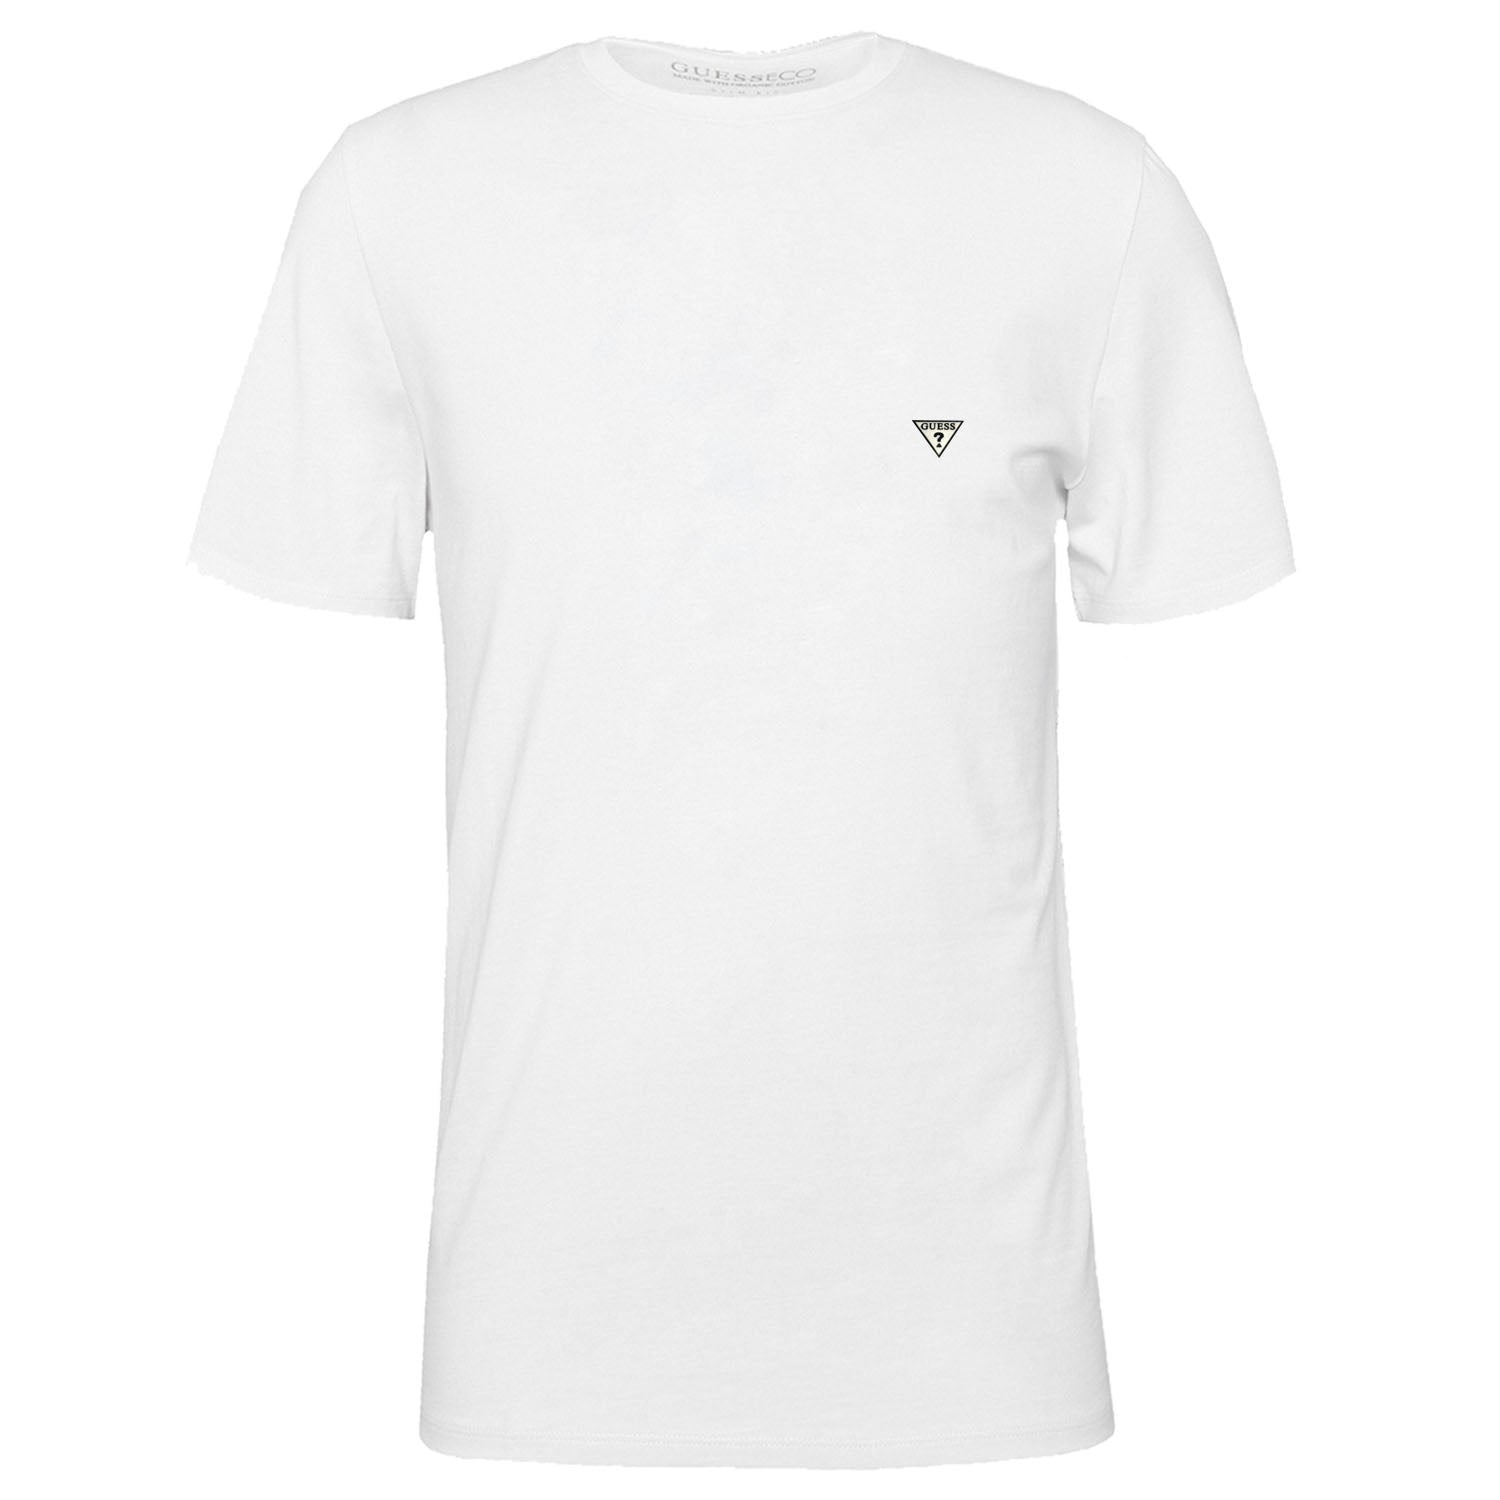 Guess Logo Detail Plain T-Shirt